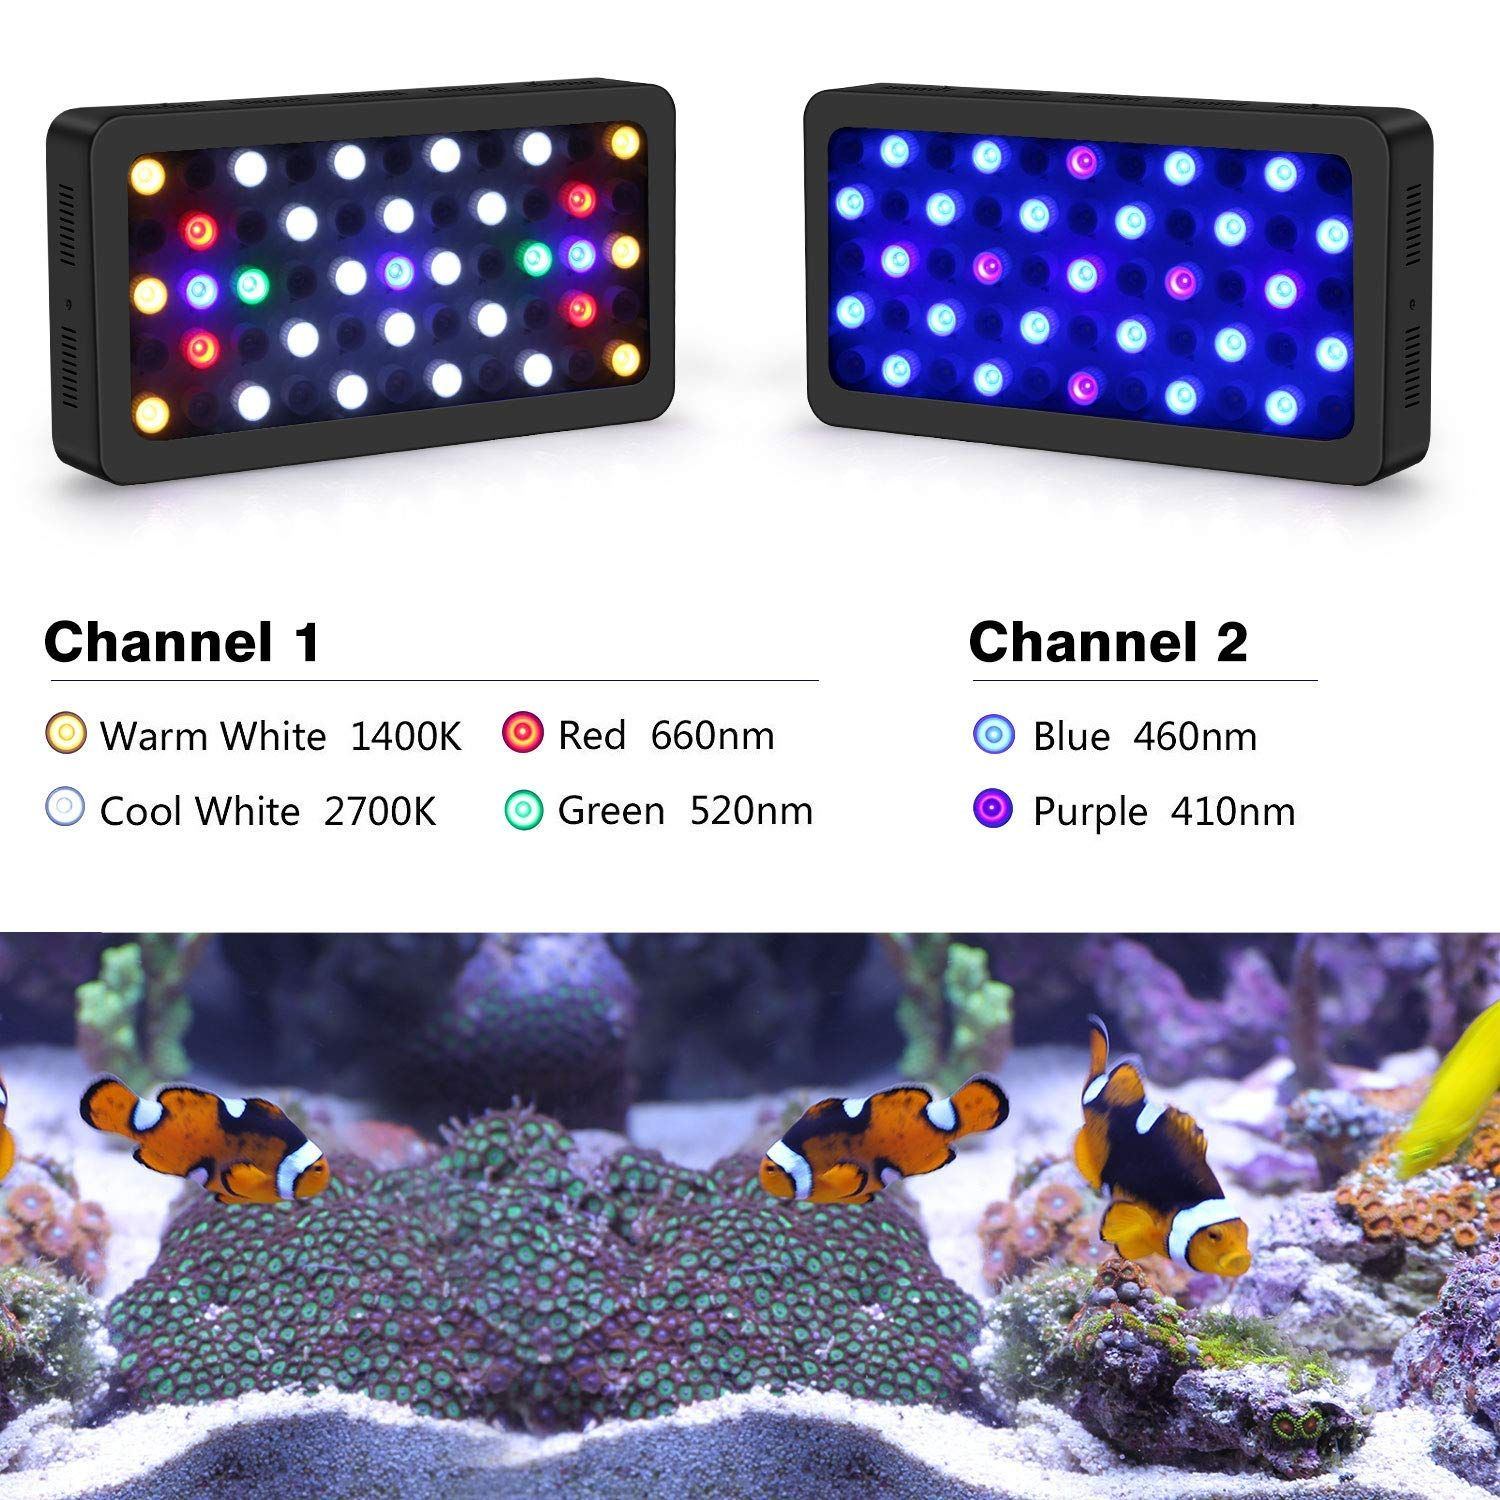 10 Best Reef Led Lights Reviews Side By Side Comparison Led Aquarium Lighting Aquarium Lighting Beautiful Fish